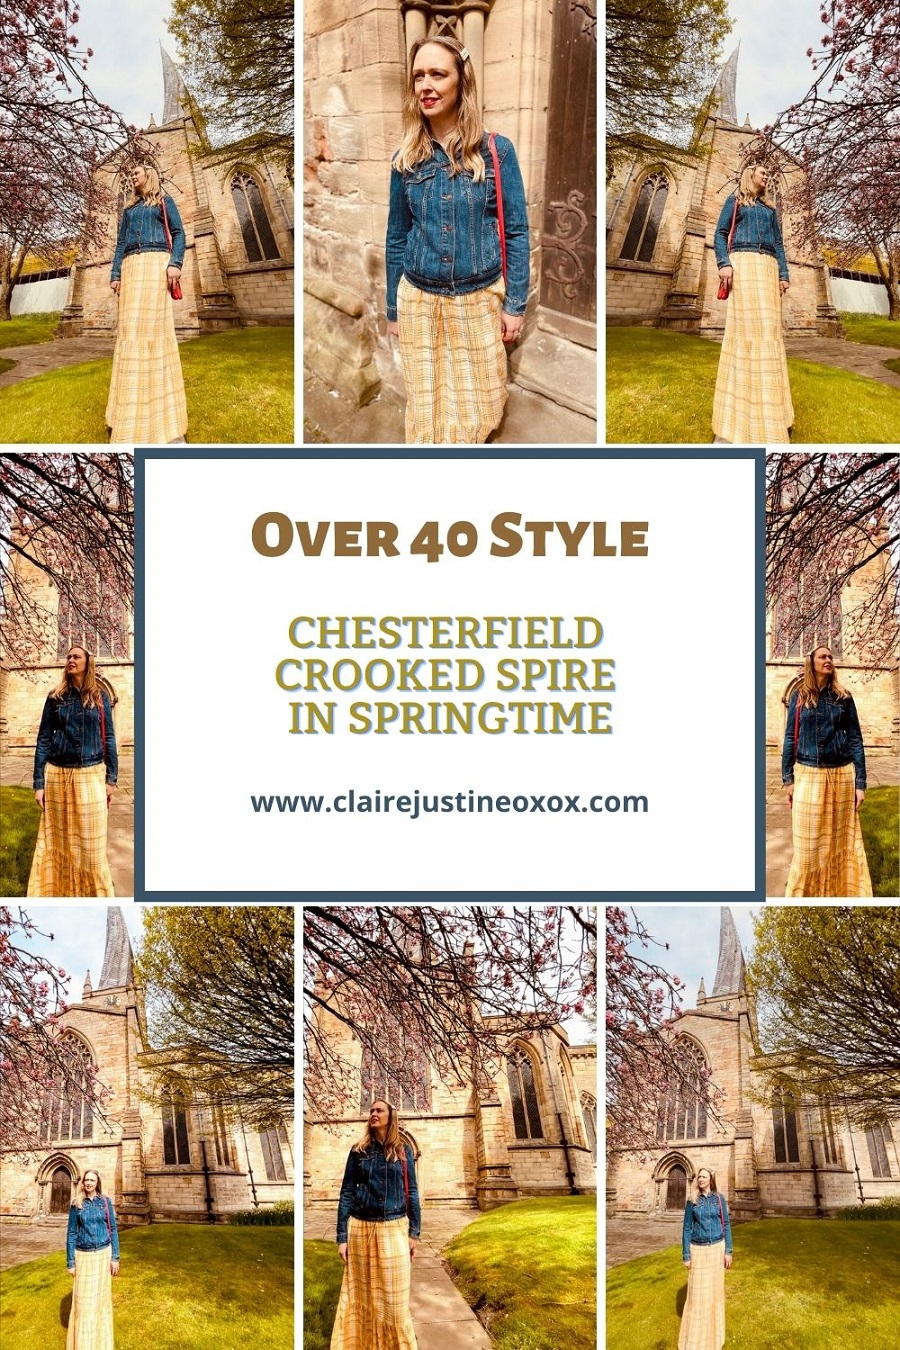 Chesterfield Crooked Spire In Springtime